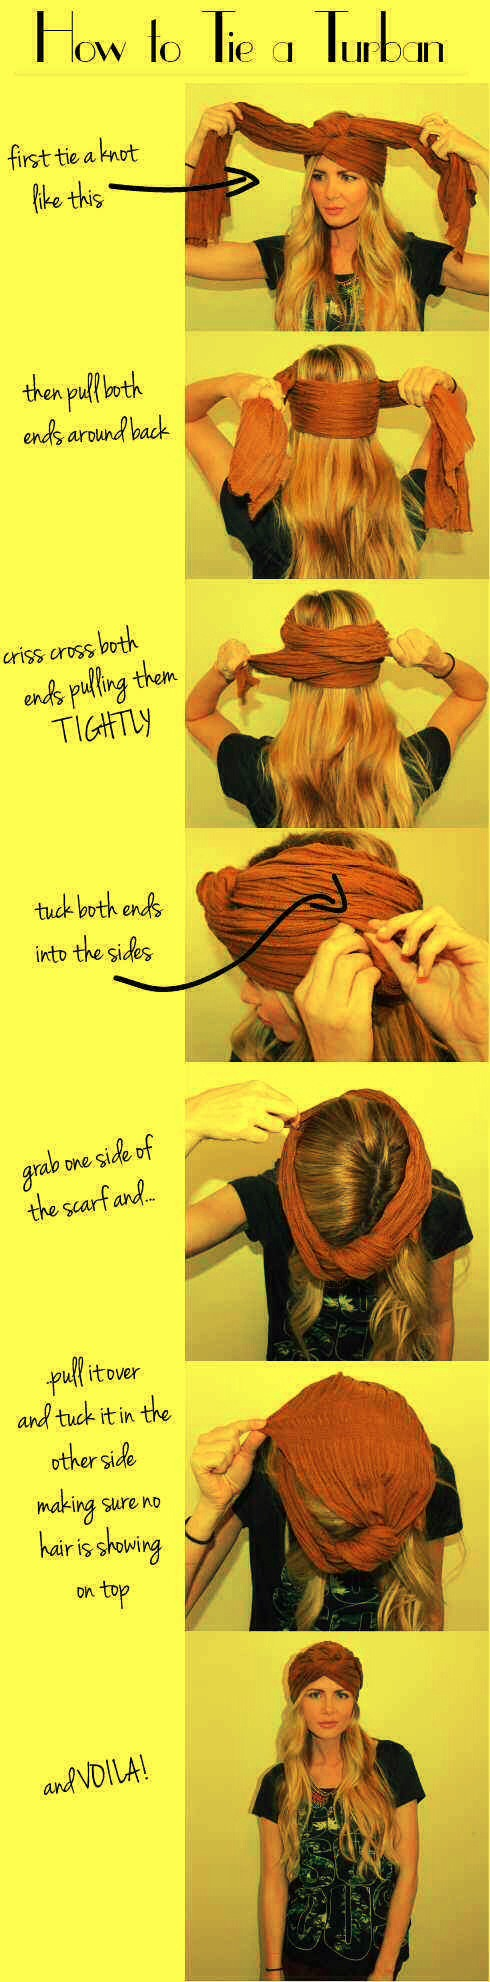 26. Cover a bad hair day with a turban.